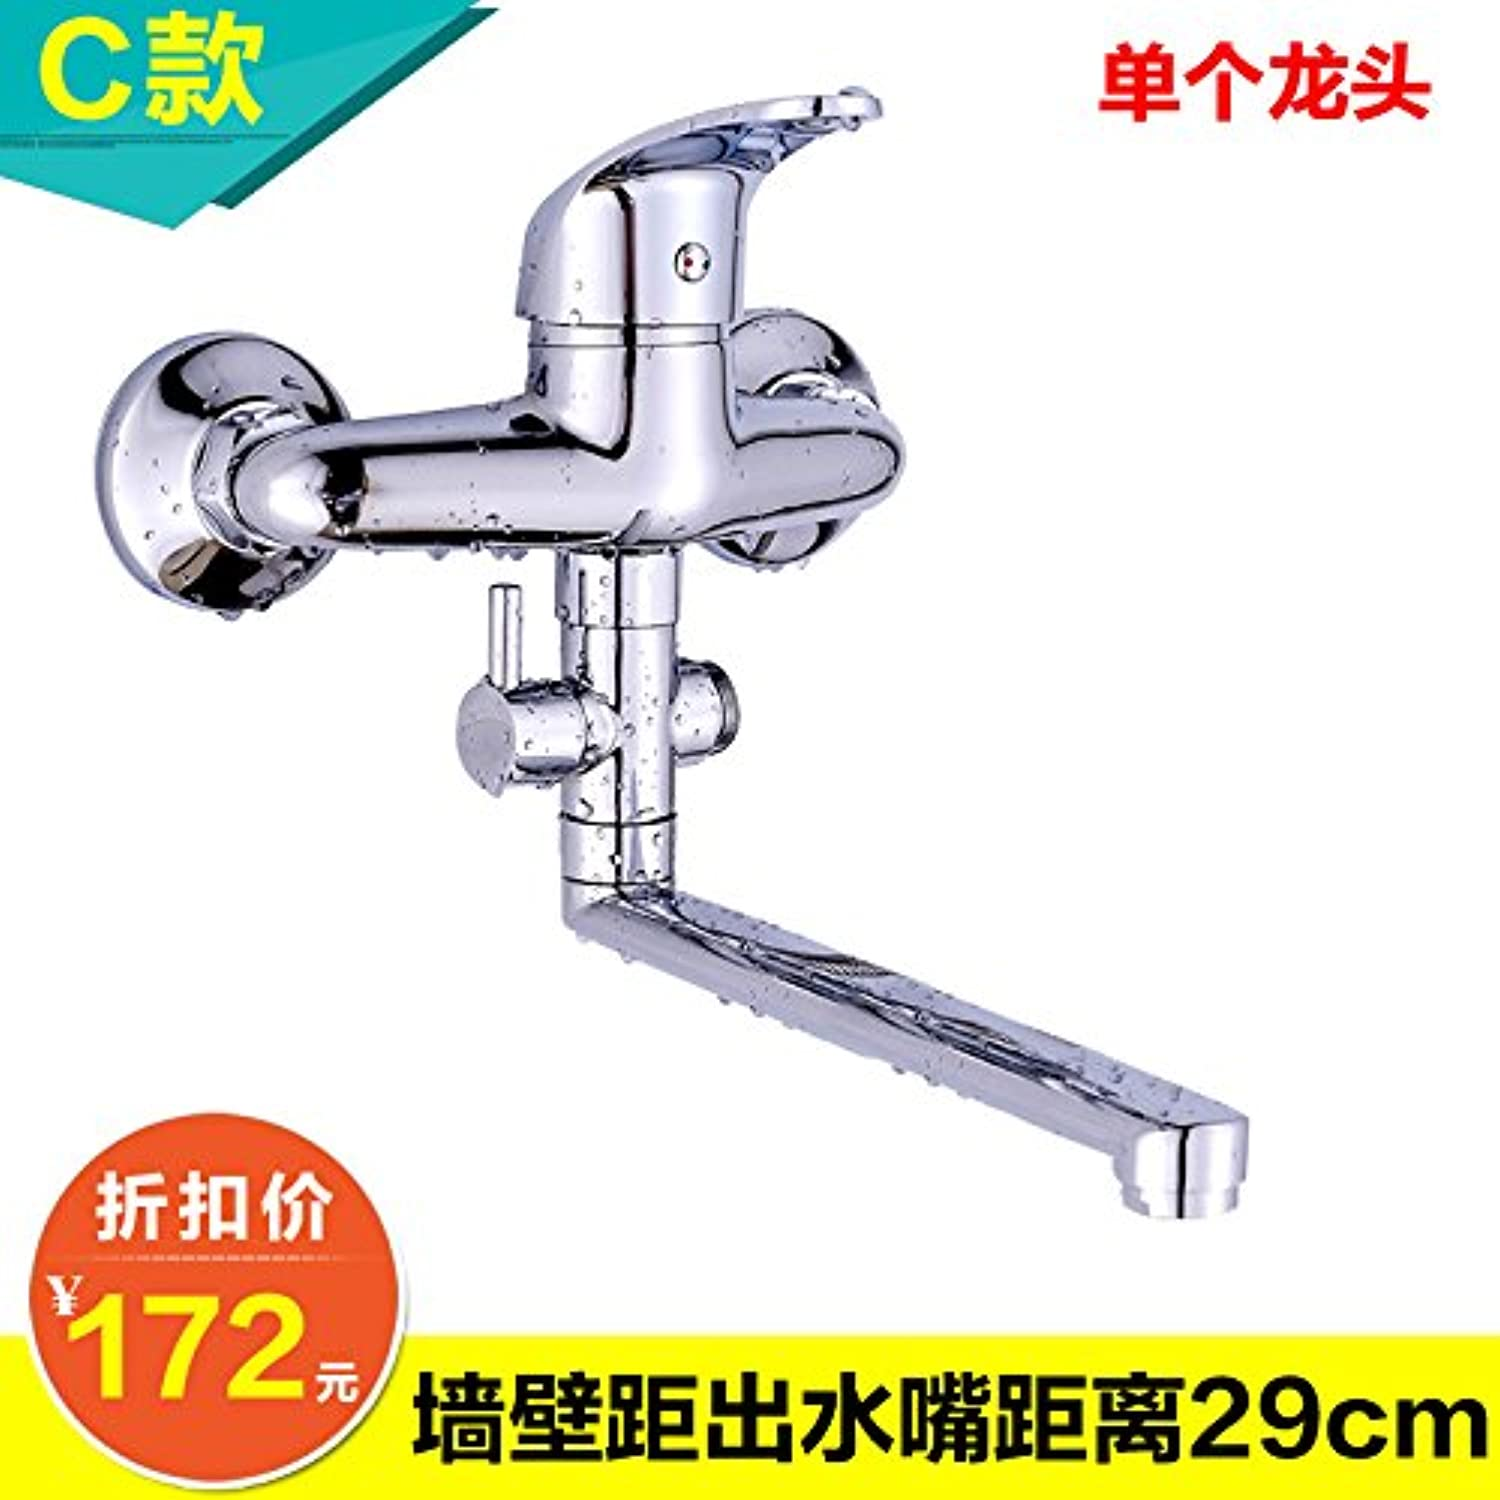 Hlluya Professional Sink Mixer Tap Kitchen Press the flipper Bath Faucet Shower Faucet mixing valve shower, hot and cold water shut-off valve, hot and cold switch C-wall is the water nozzles 29cm